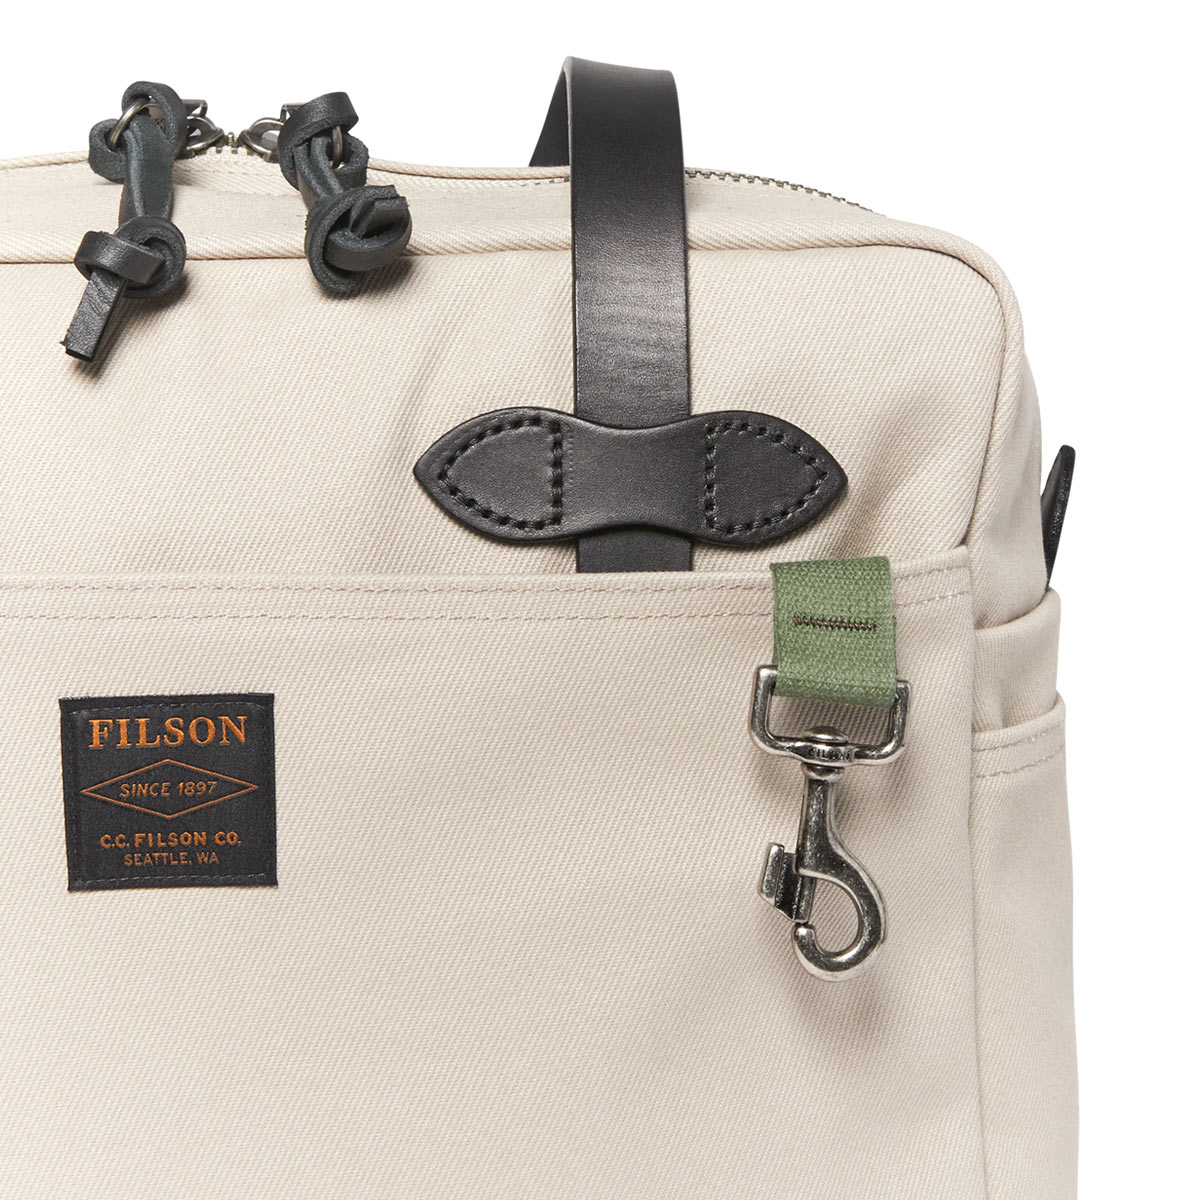 Filson Rugged Twill Tote Bag With Zipper 11070261-Twine, Tote Bag made for men and women who love quality and style